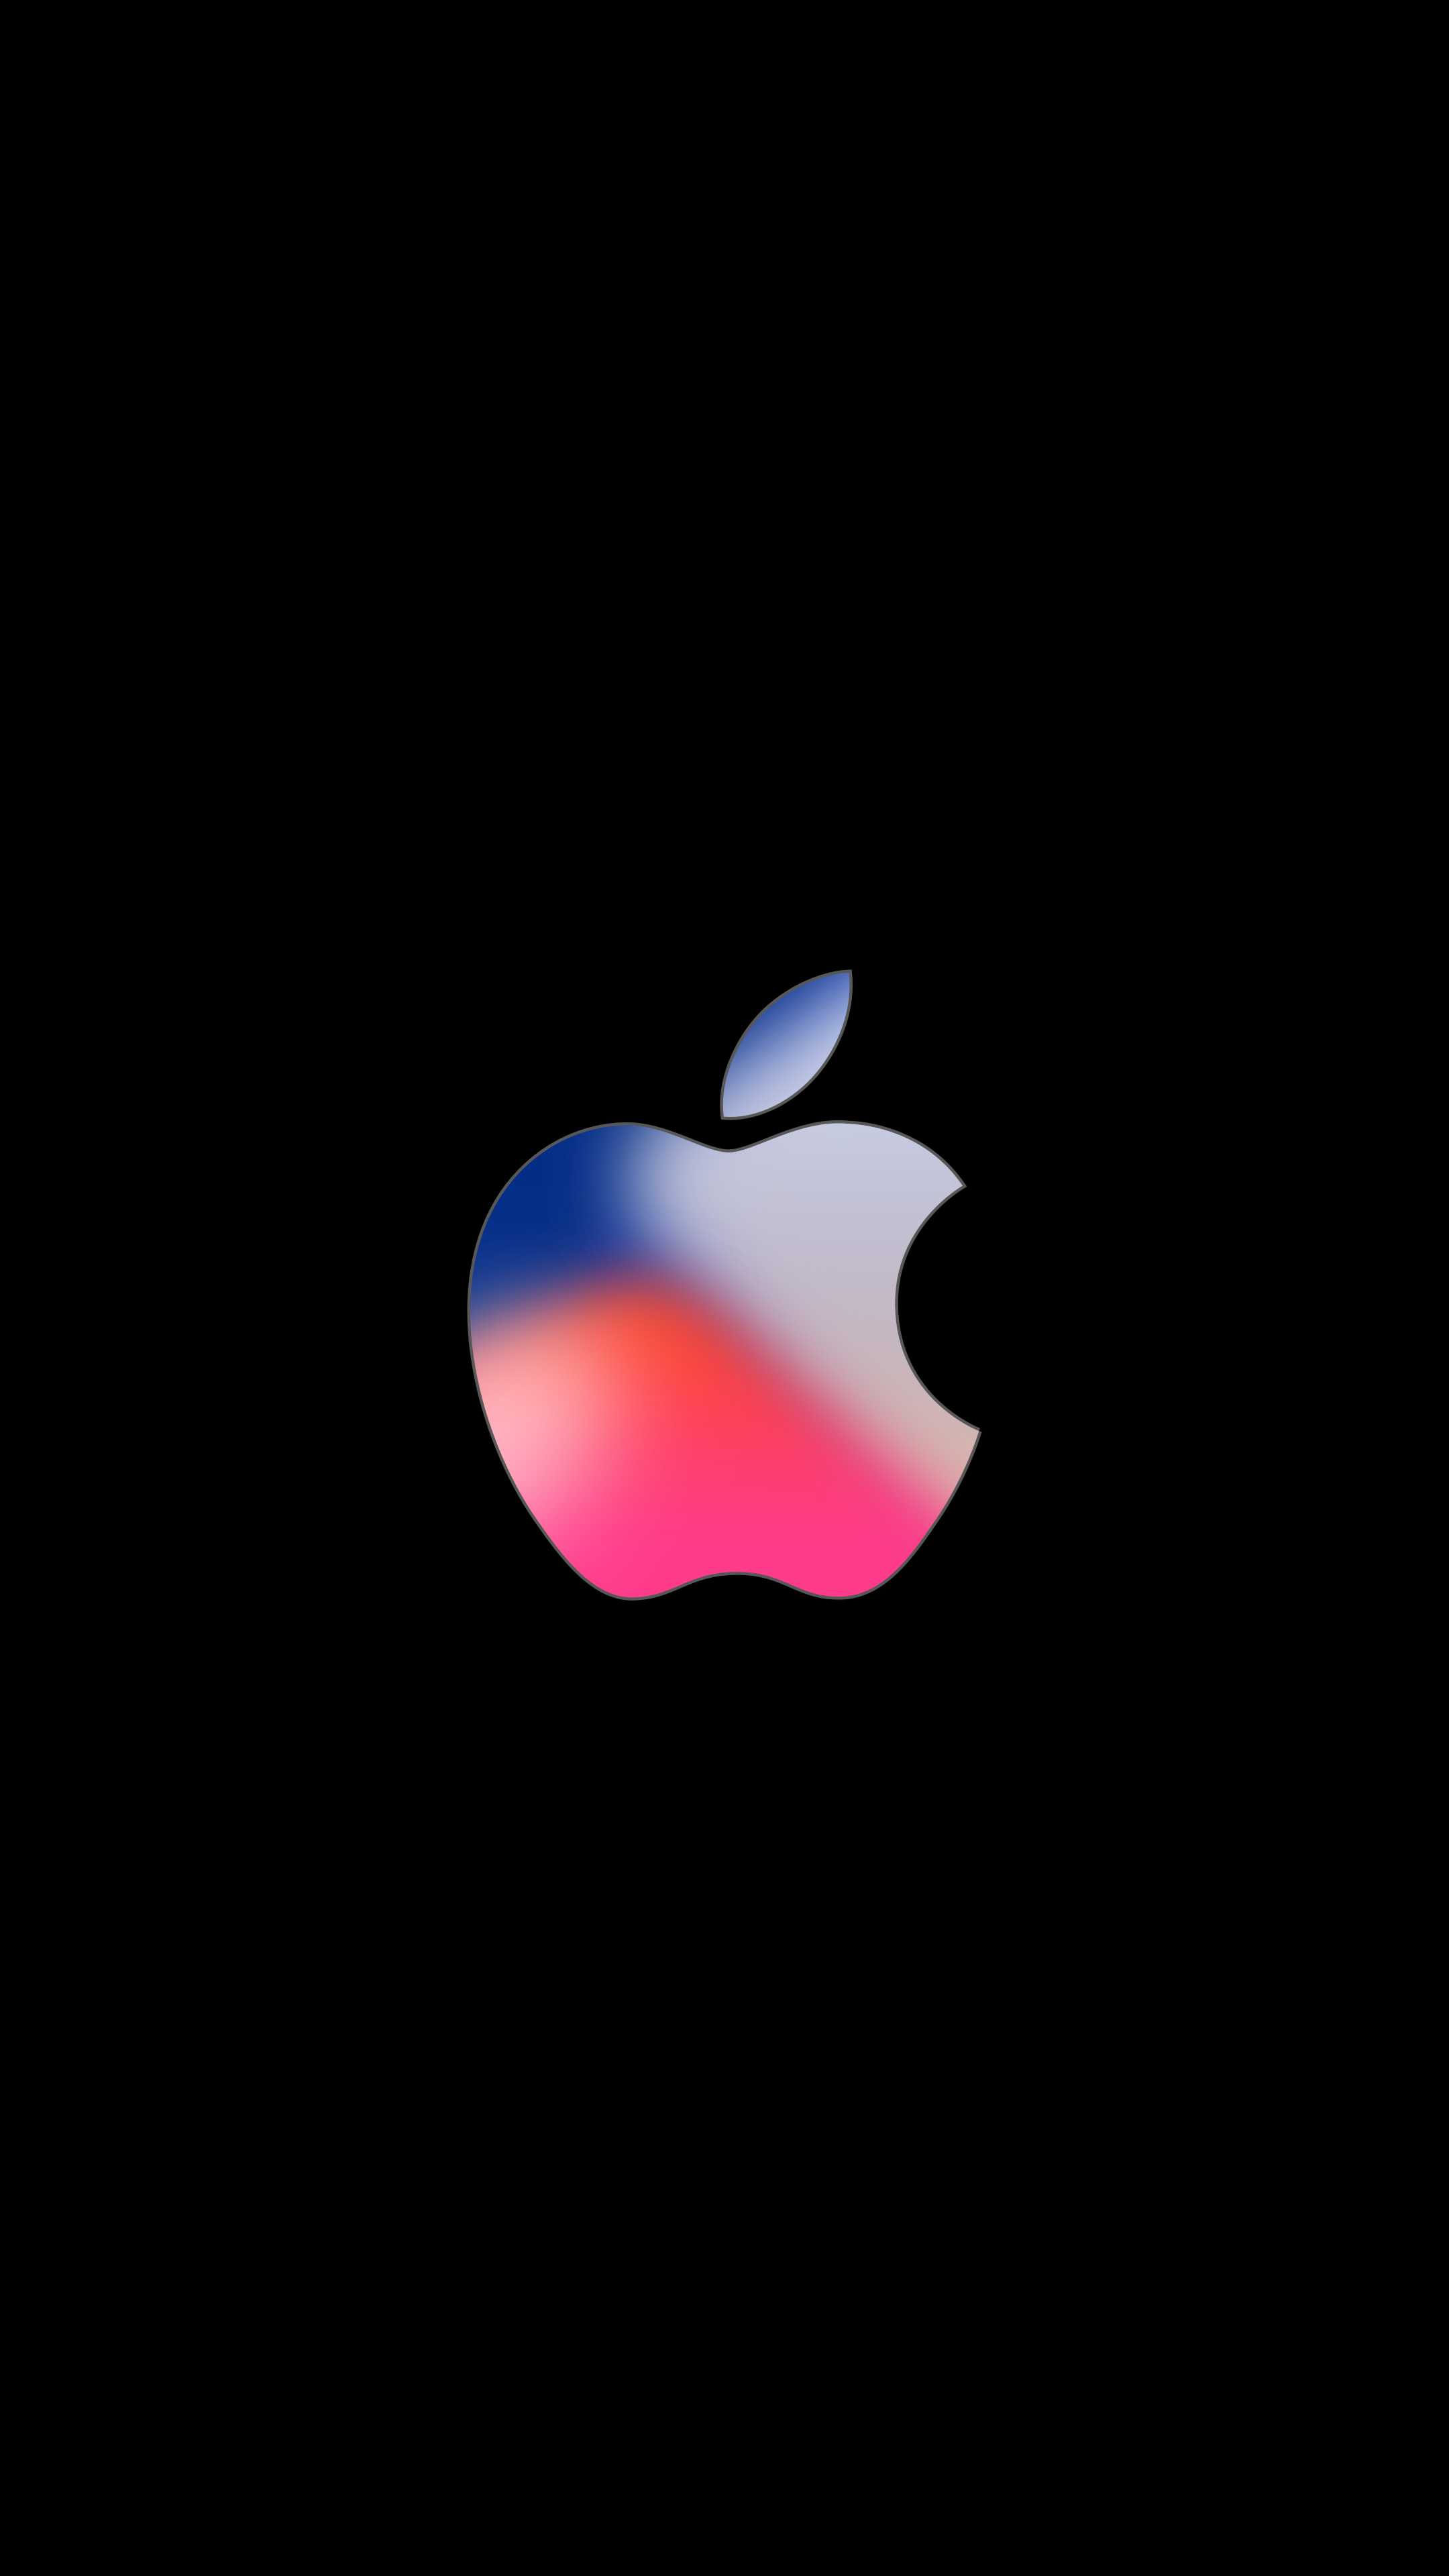 Download September 12 iPhone 8 Event Wallpapers For iPhone 2160x3840